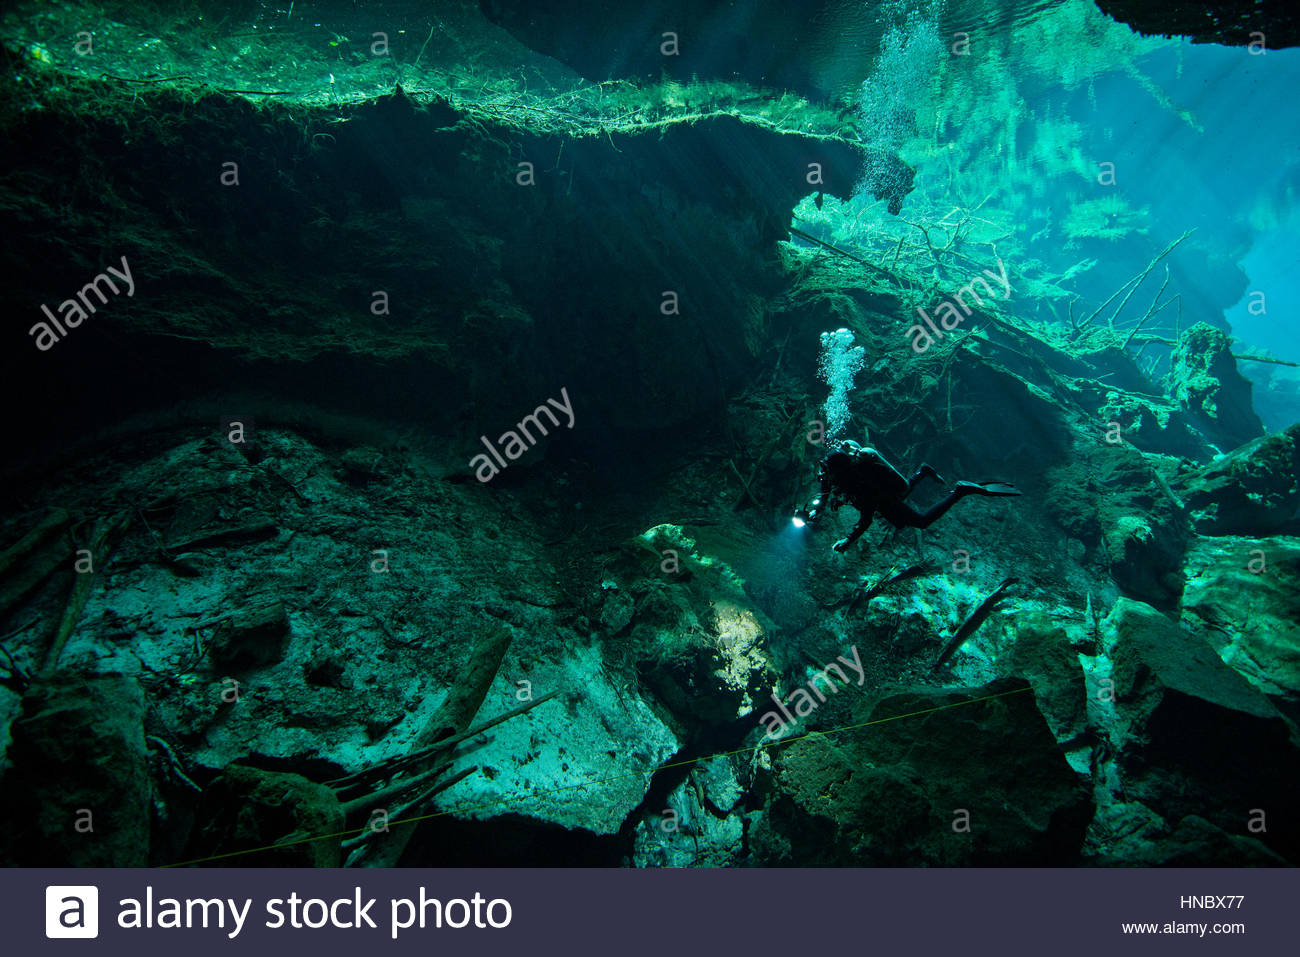 Sunlight shines on a diver exploring Cenote El Pit. - Stock Image